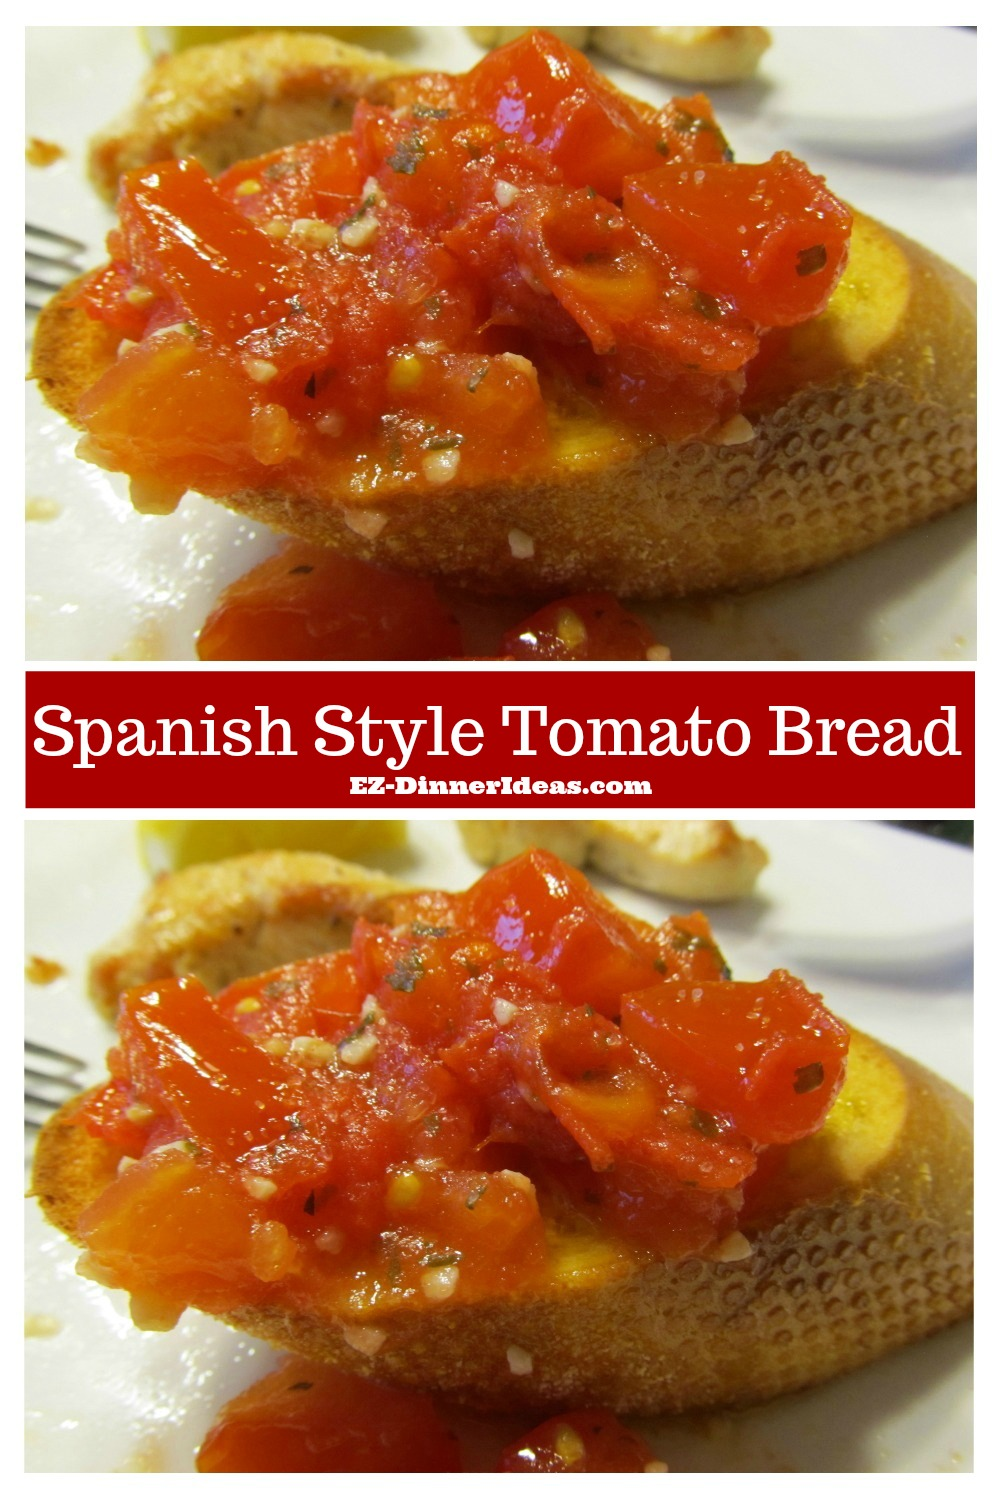 This fine dining finger food is not only great served in a party, but also as a side dish.  Enjoy the flavor explosion with this Spanish Style Tomato Bread.